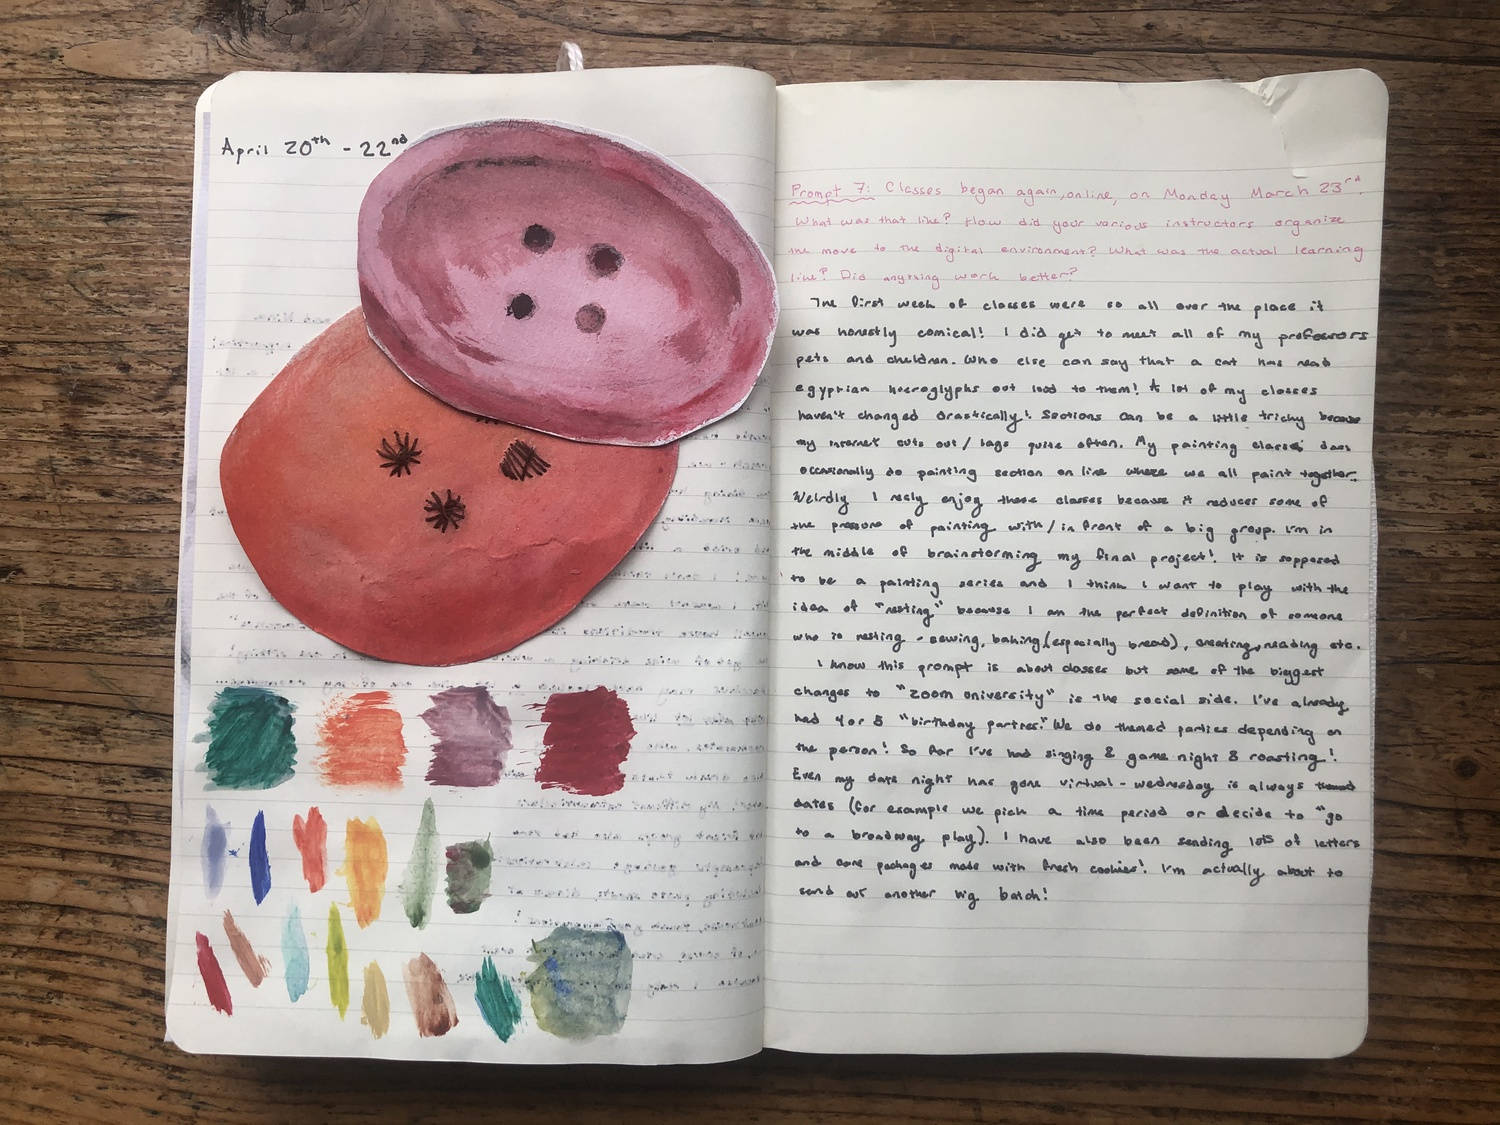 Francesca M. Hess '20 fills her journal with paintings, Polaroids, and other knickknacks, including the invitation to commencement that arrived in the mail the same day she arrived back home.